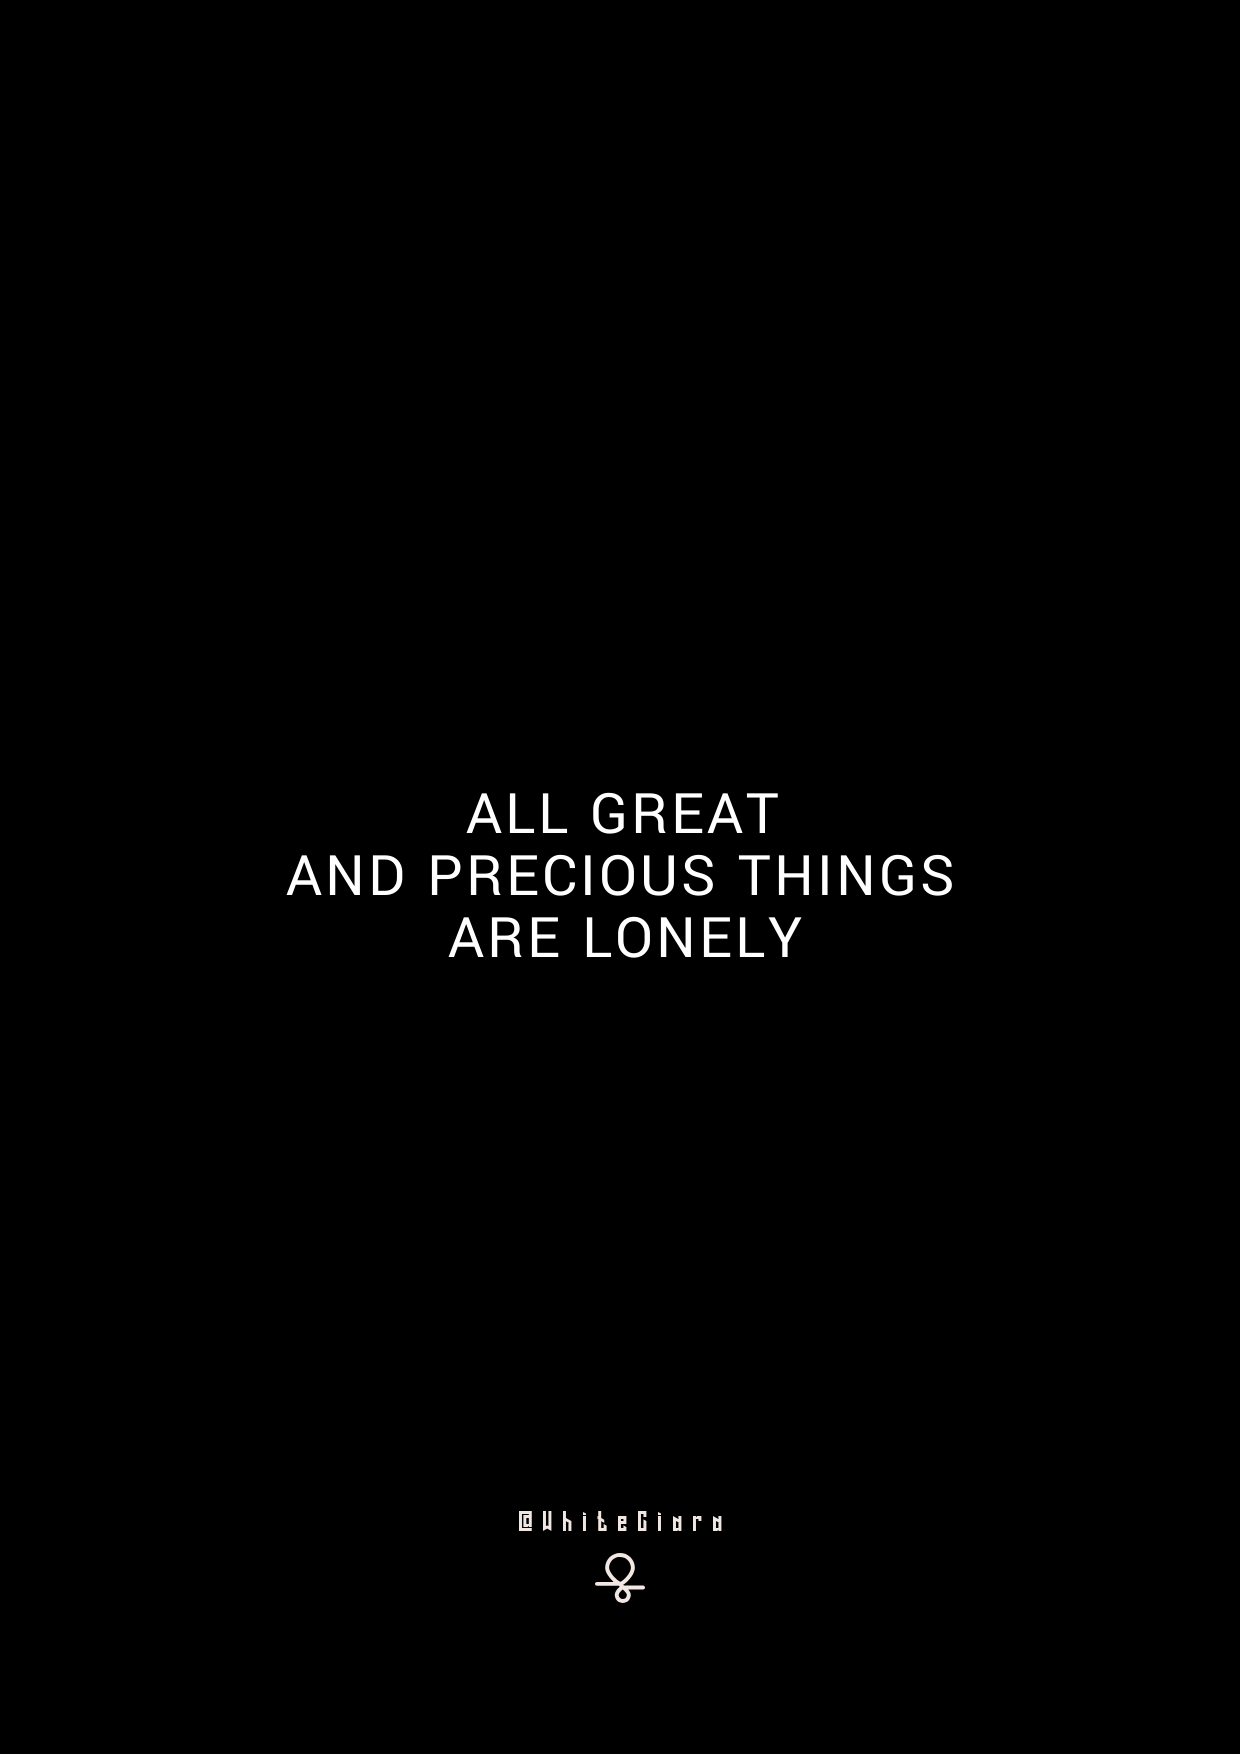 Black,                Text,                And,                White,                Font,                Monochrome,                Darkness,                Photography,                Computer,                Wallpaper,                Line,                Brand,                Couch,                 Free Image